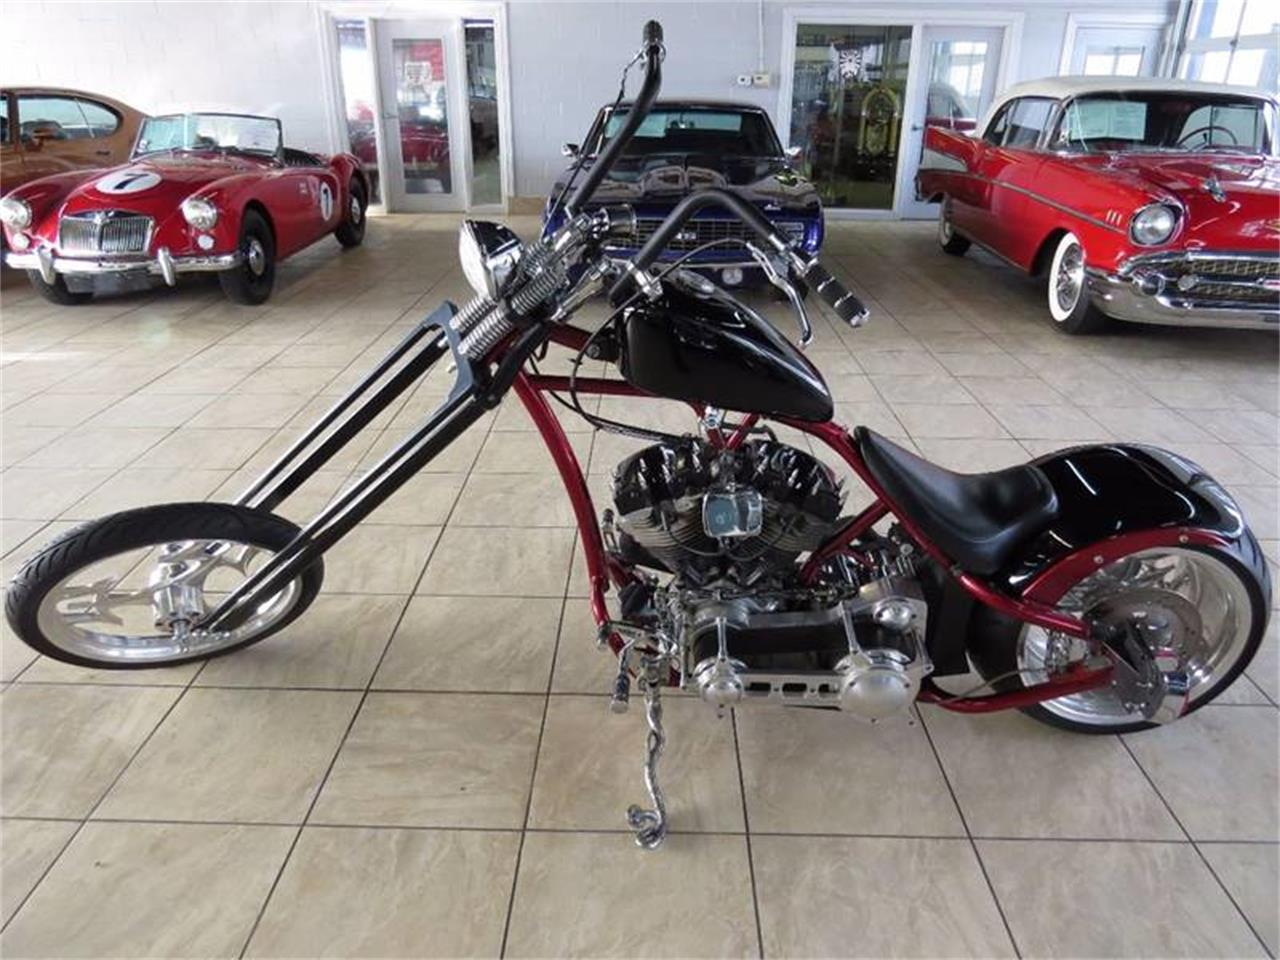 2012 Harley-Davidson Motorcycle for sale in St. Charles, IL – photo 6